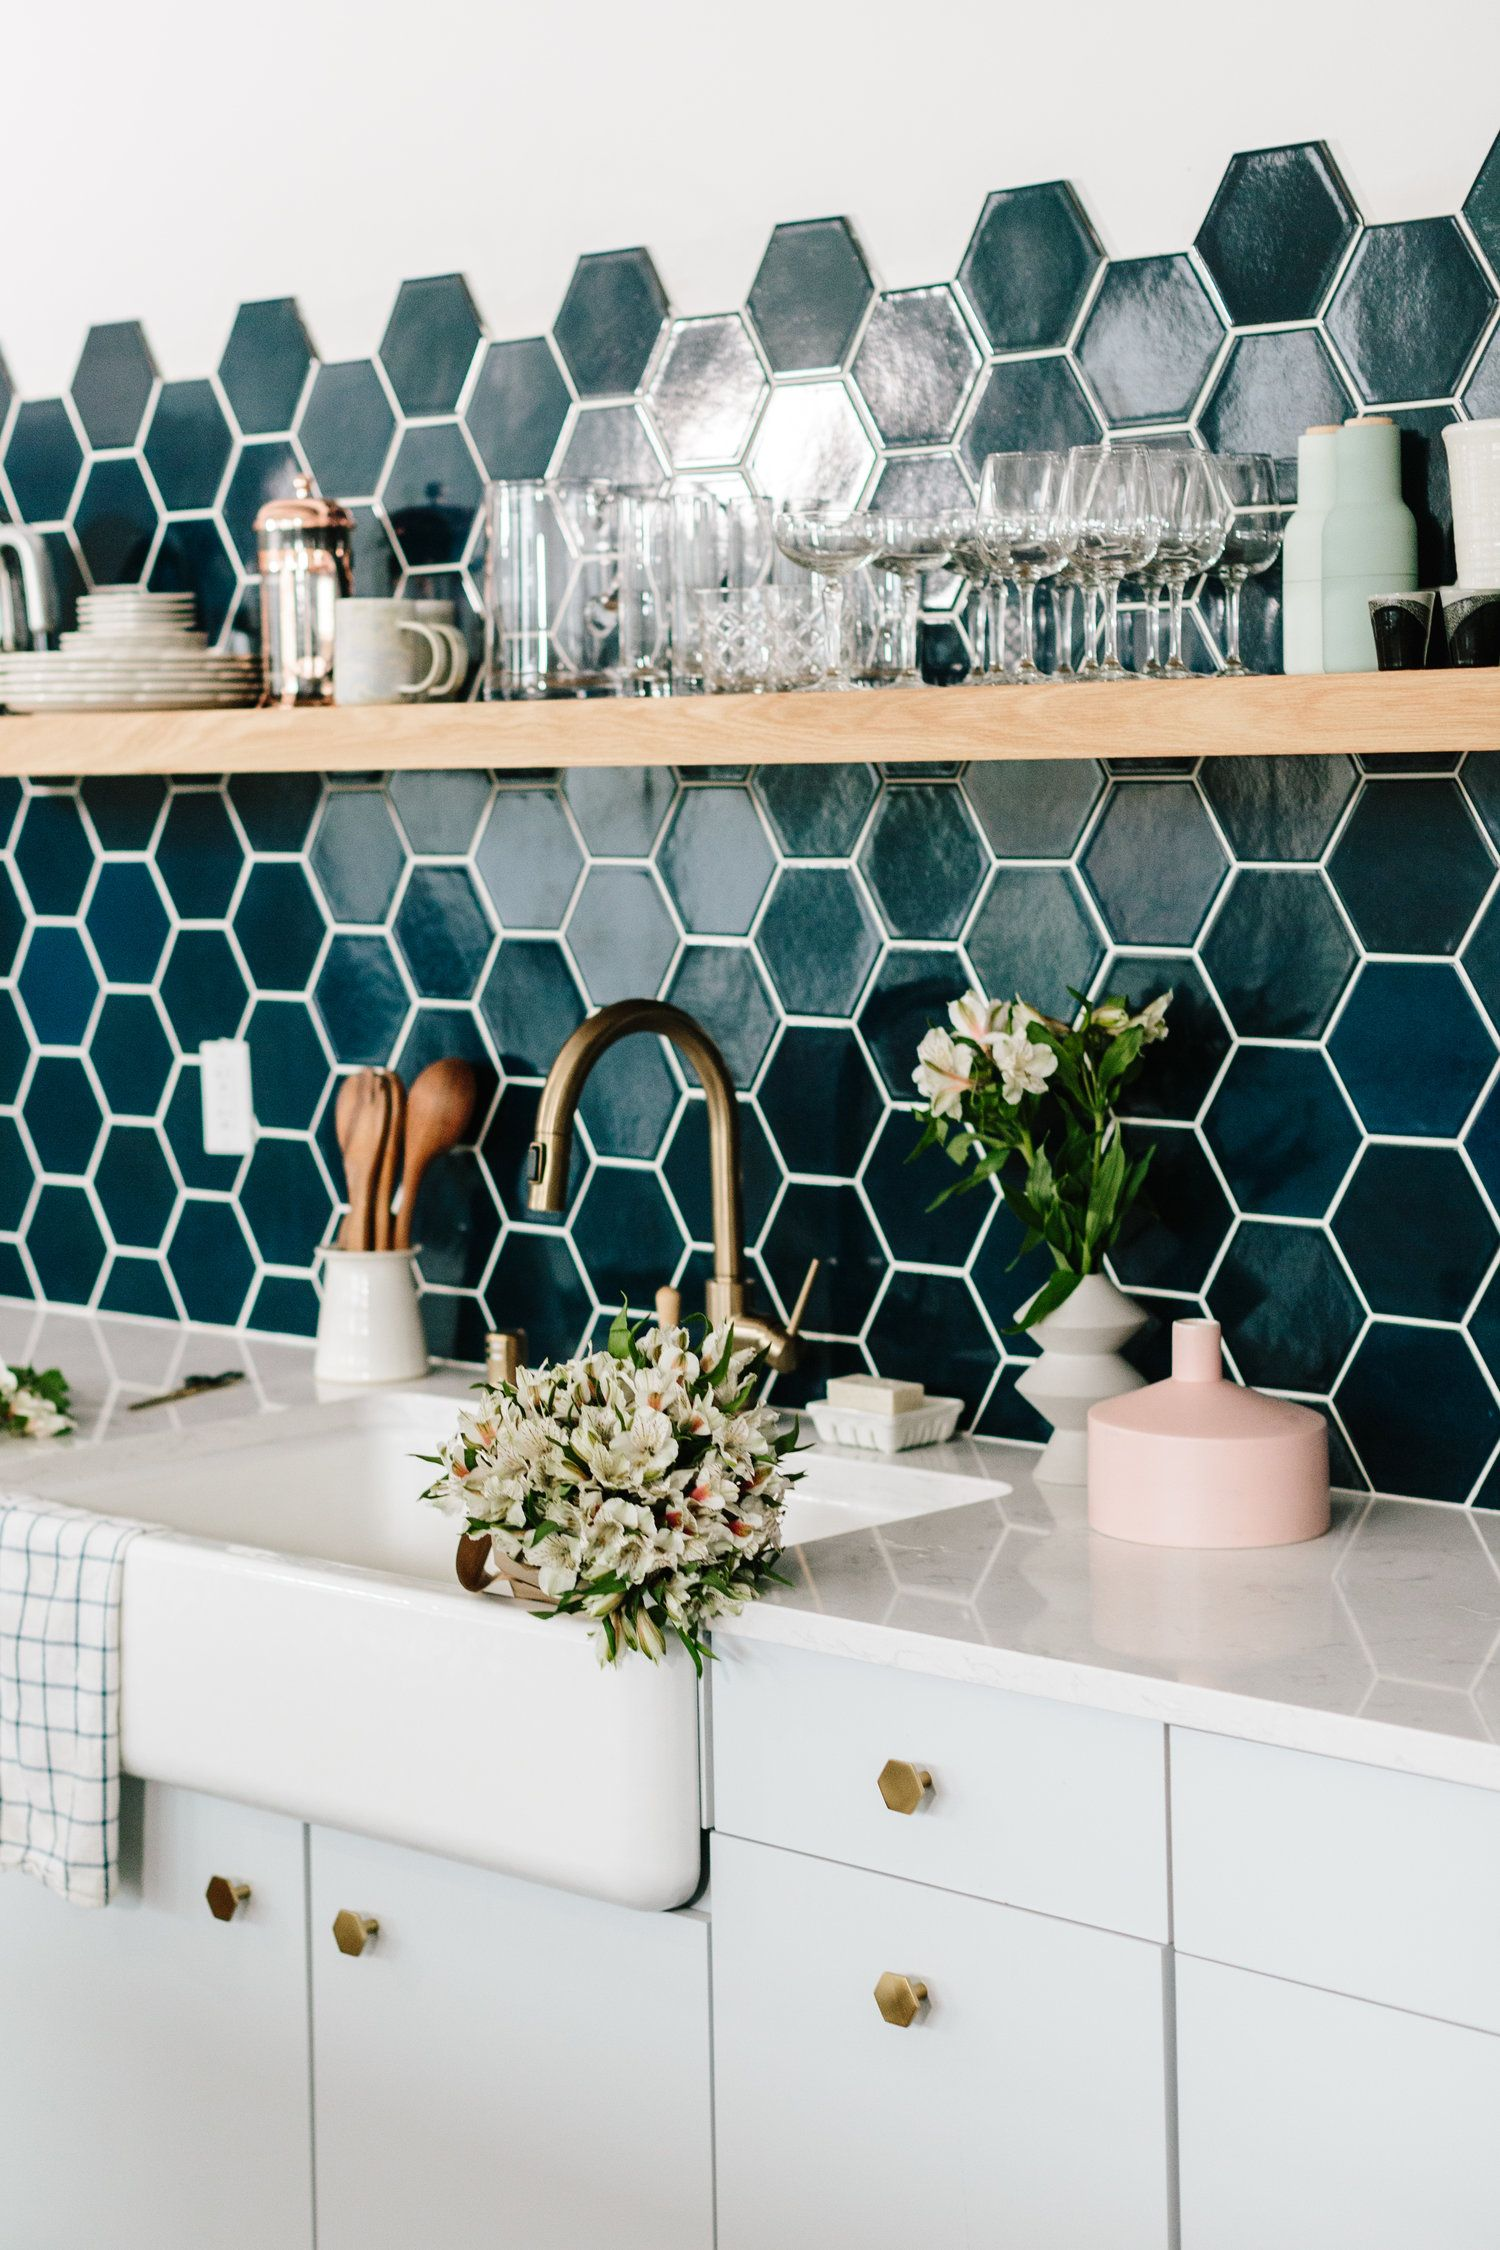 Best 12 Decorative Kitchen Tile Ideas DIY Design & Decor